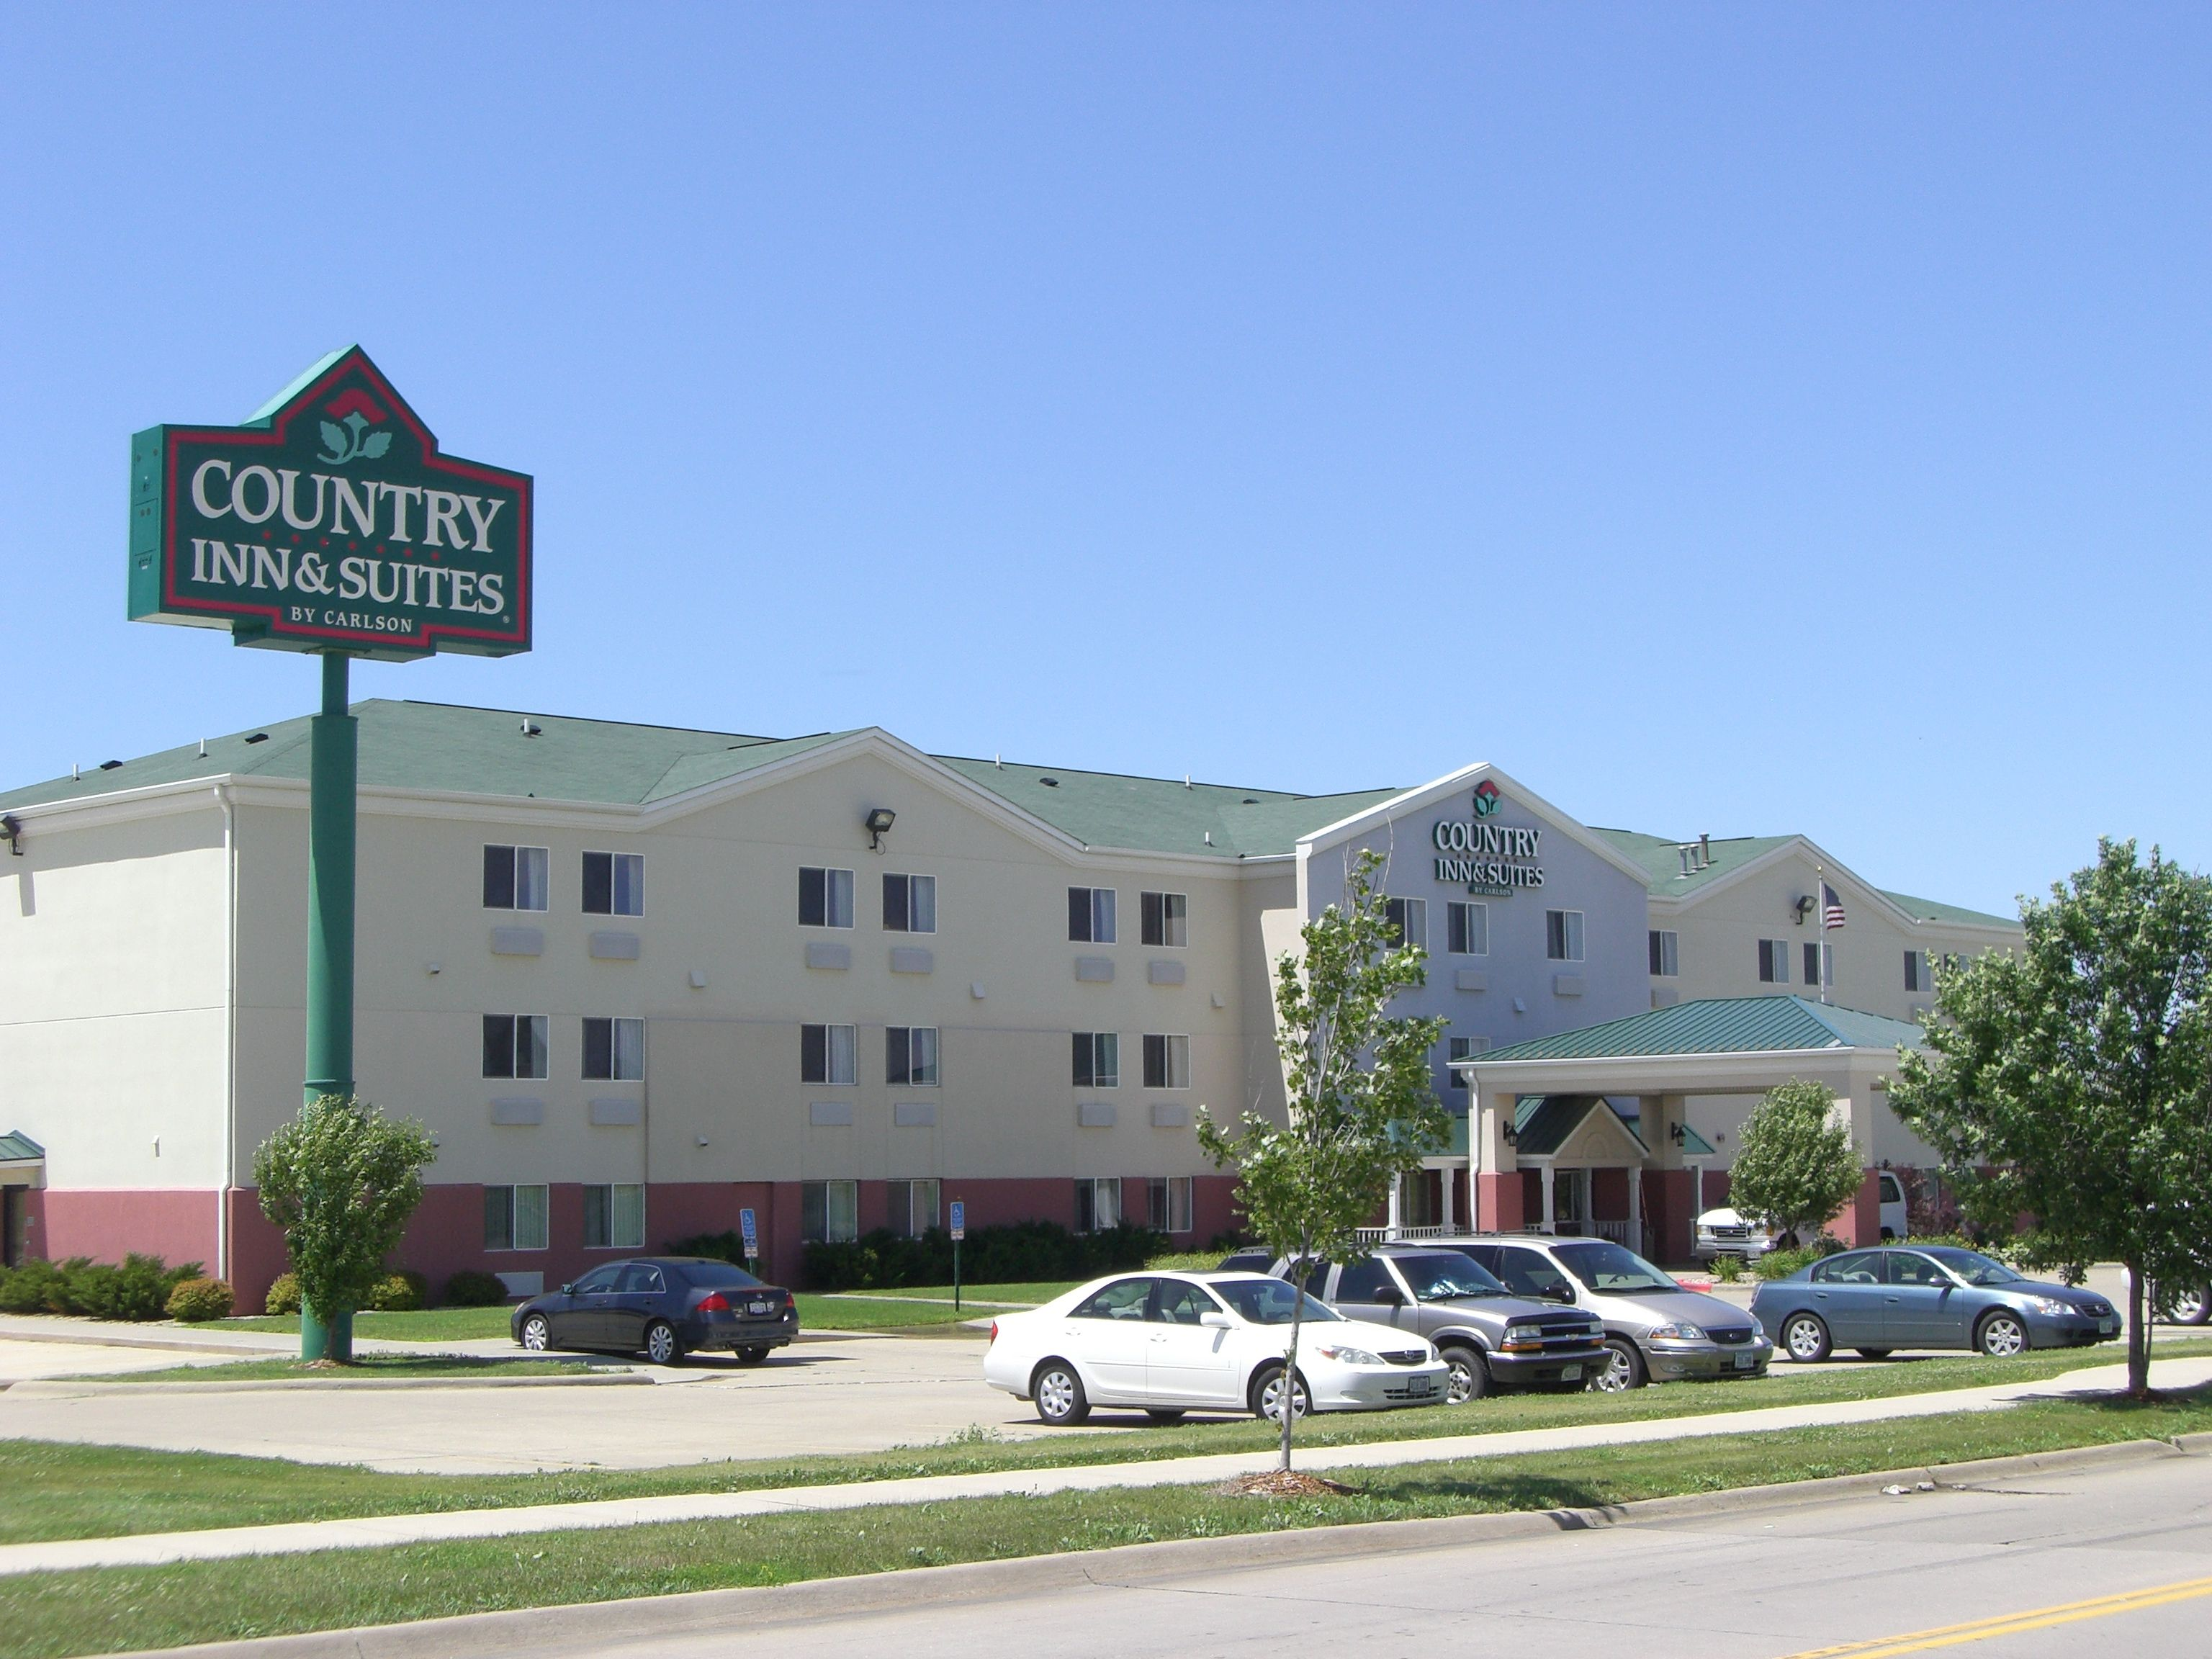 Country Inn & Suites in Cedar Rapids, IA is less than 25